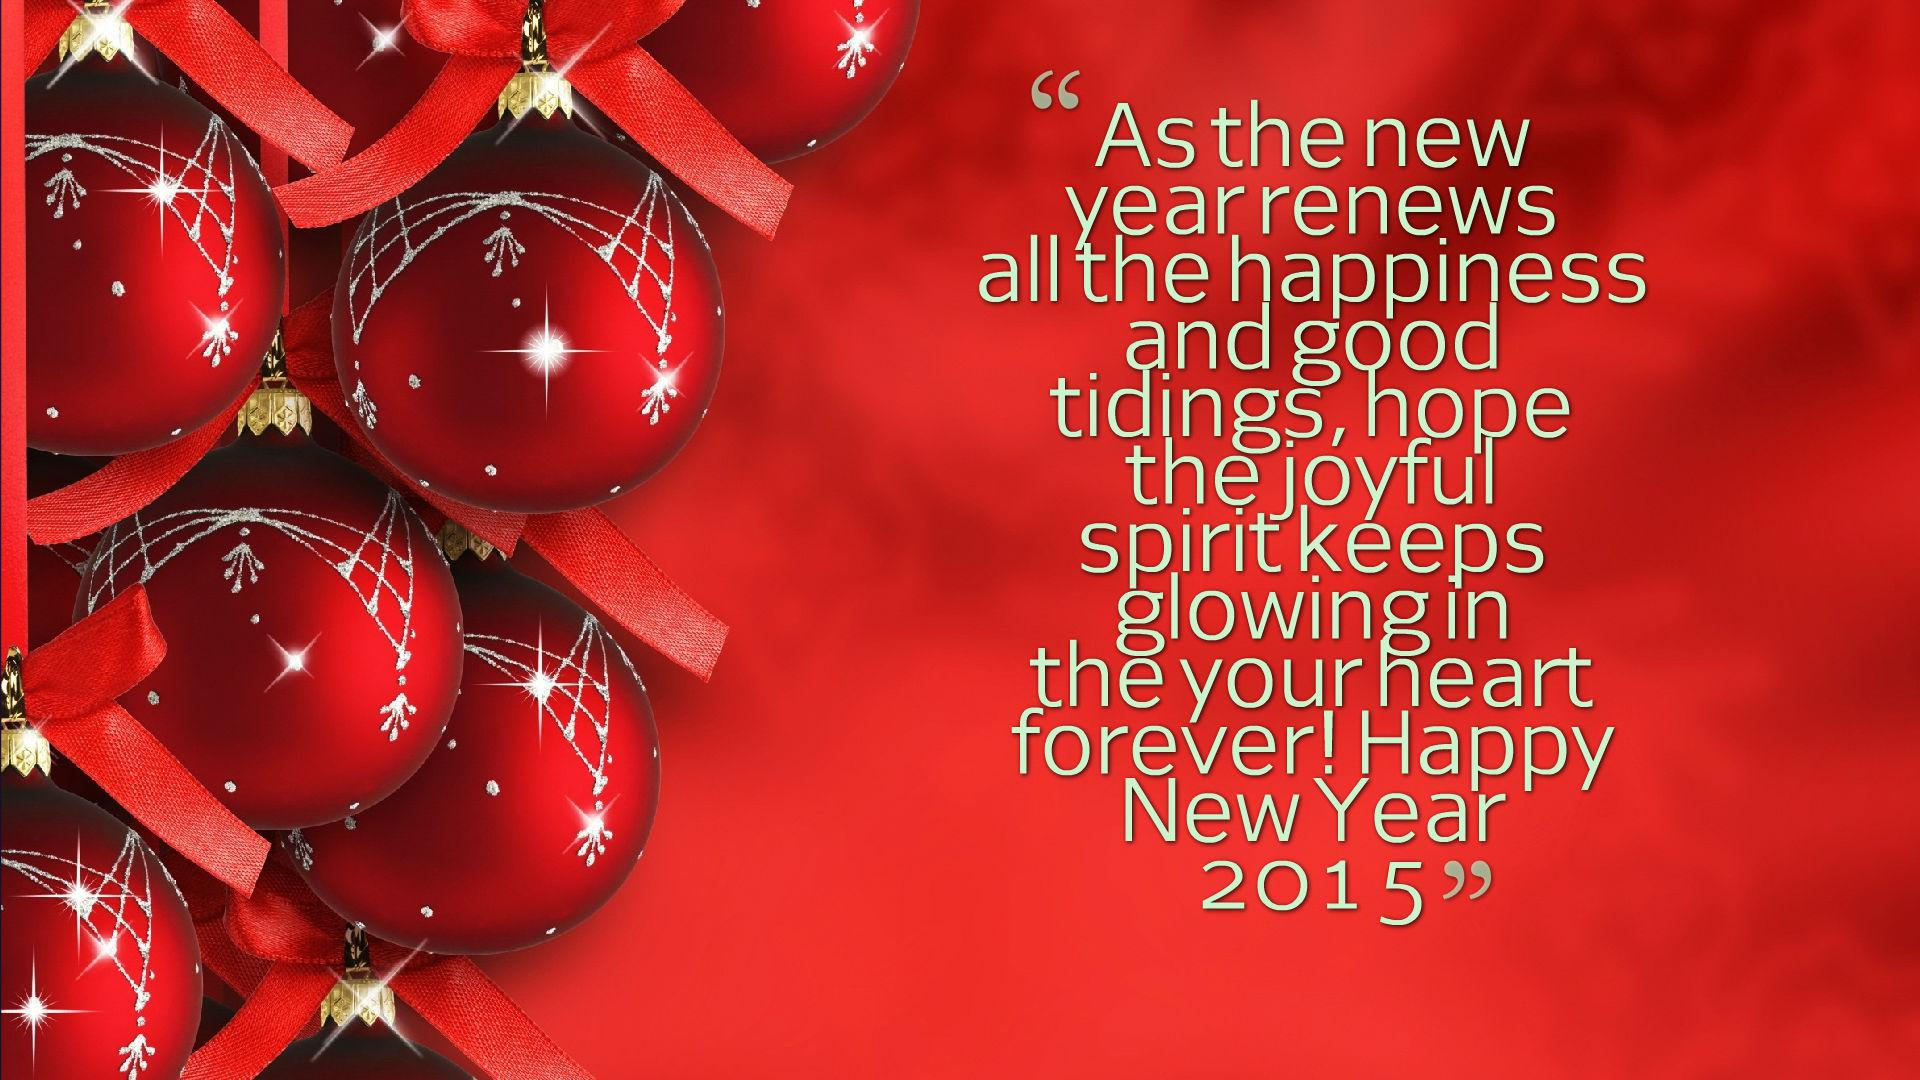 Awesome New Year 2015 Quotes Pictures For Facebook Cover 1920x1080